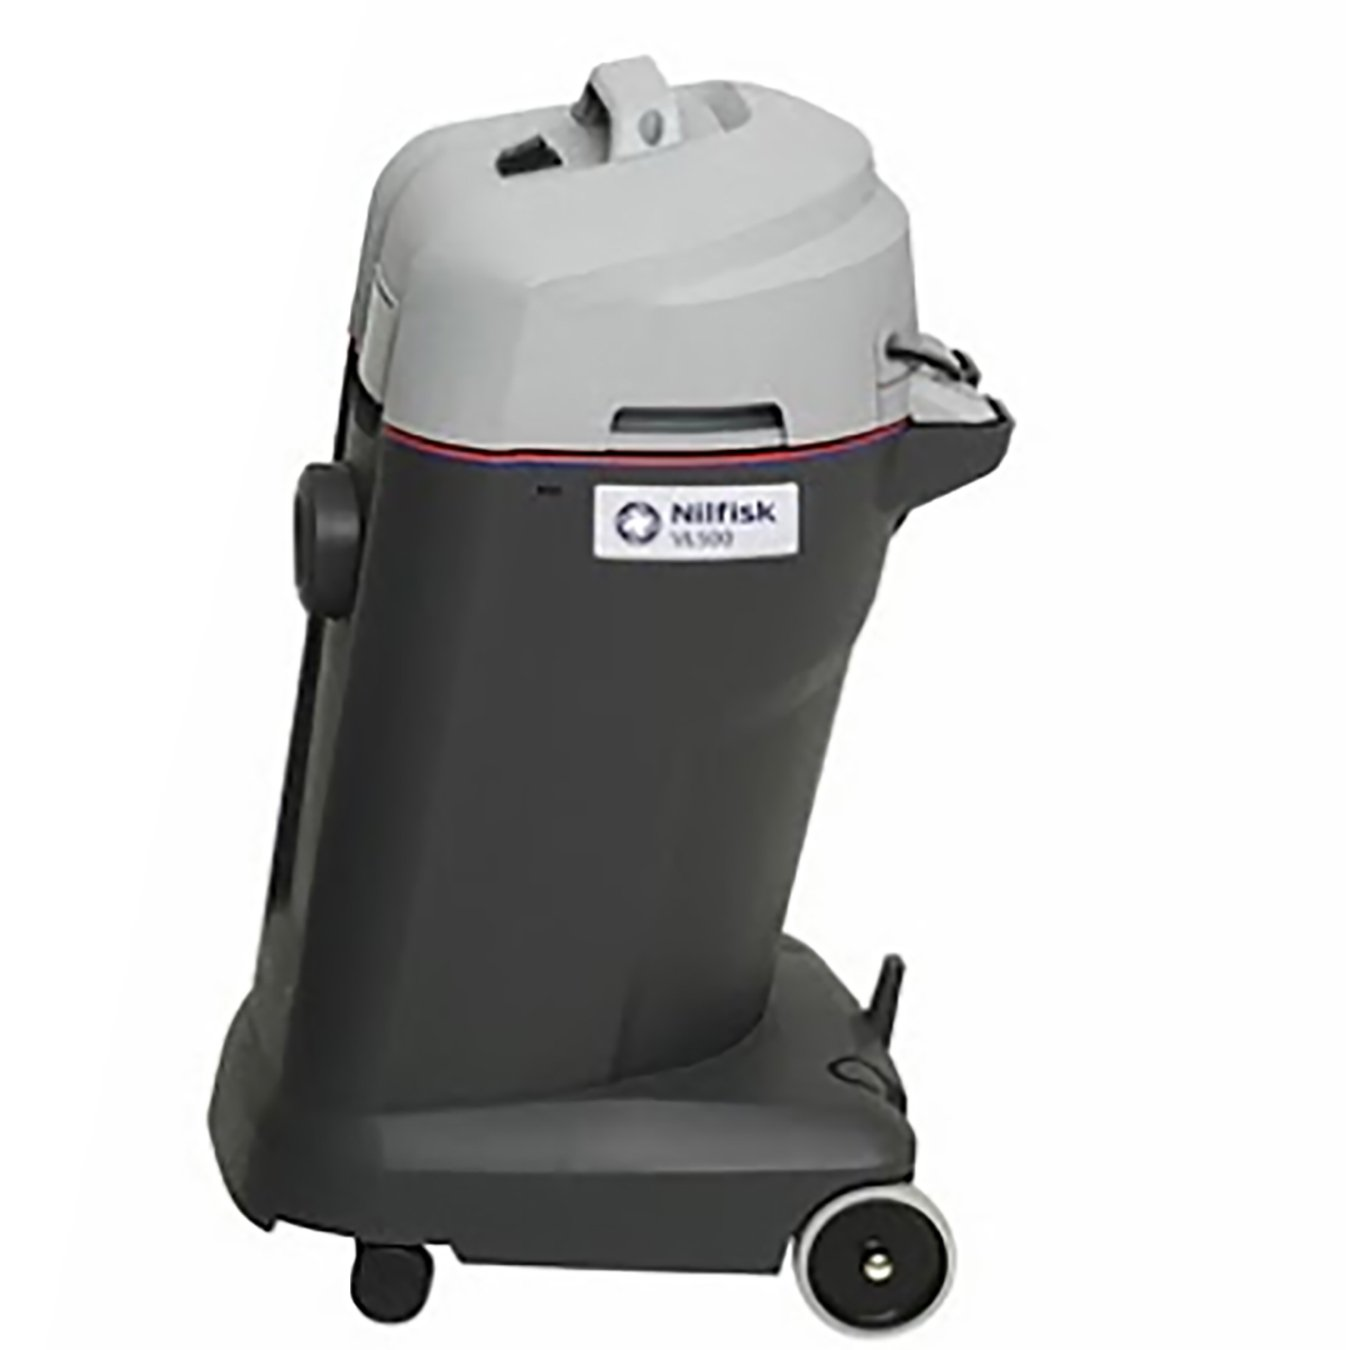 Advance VL500 35-9 Gal Wet/Dry Vacuum Model Number 107409094, Gray by Advance